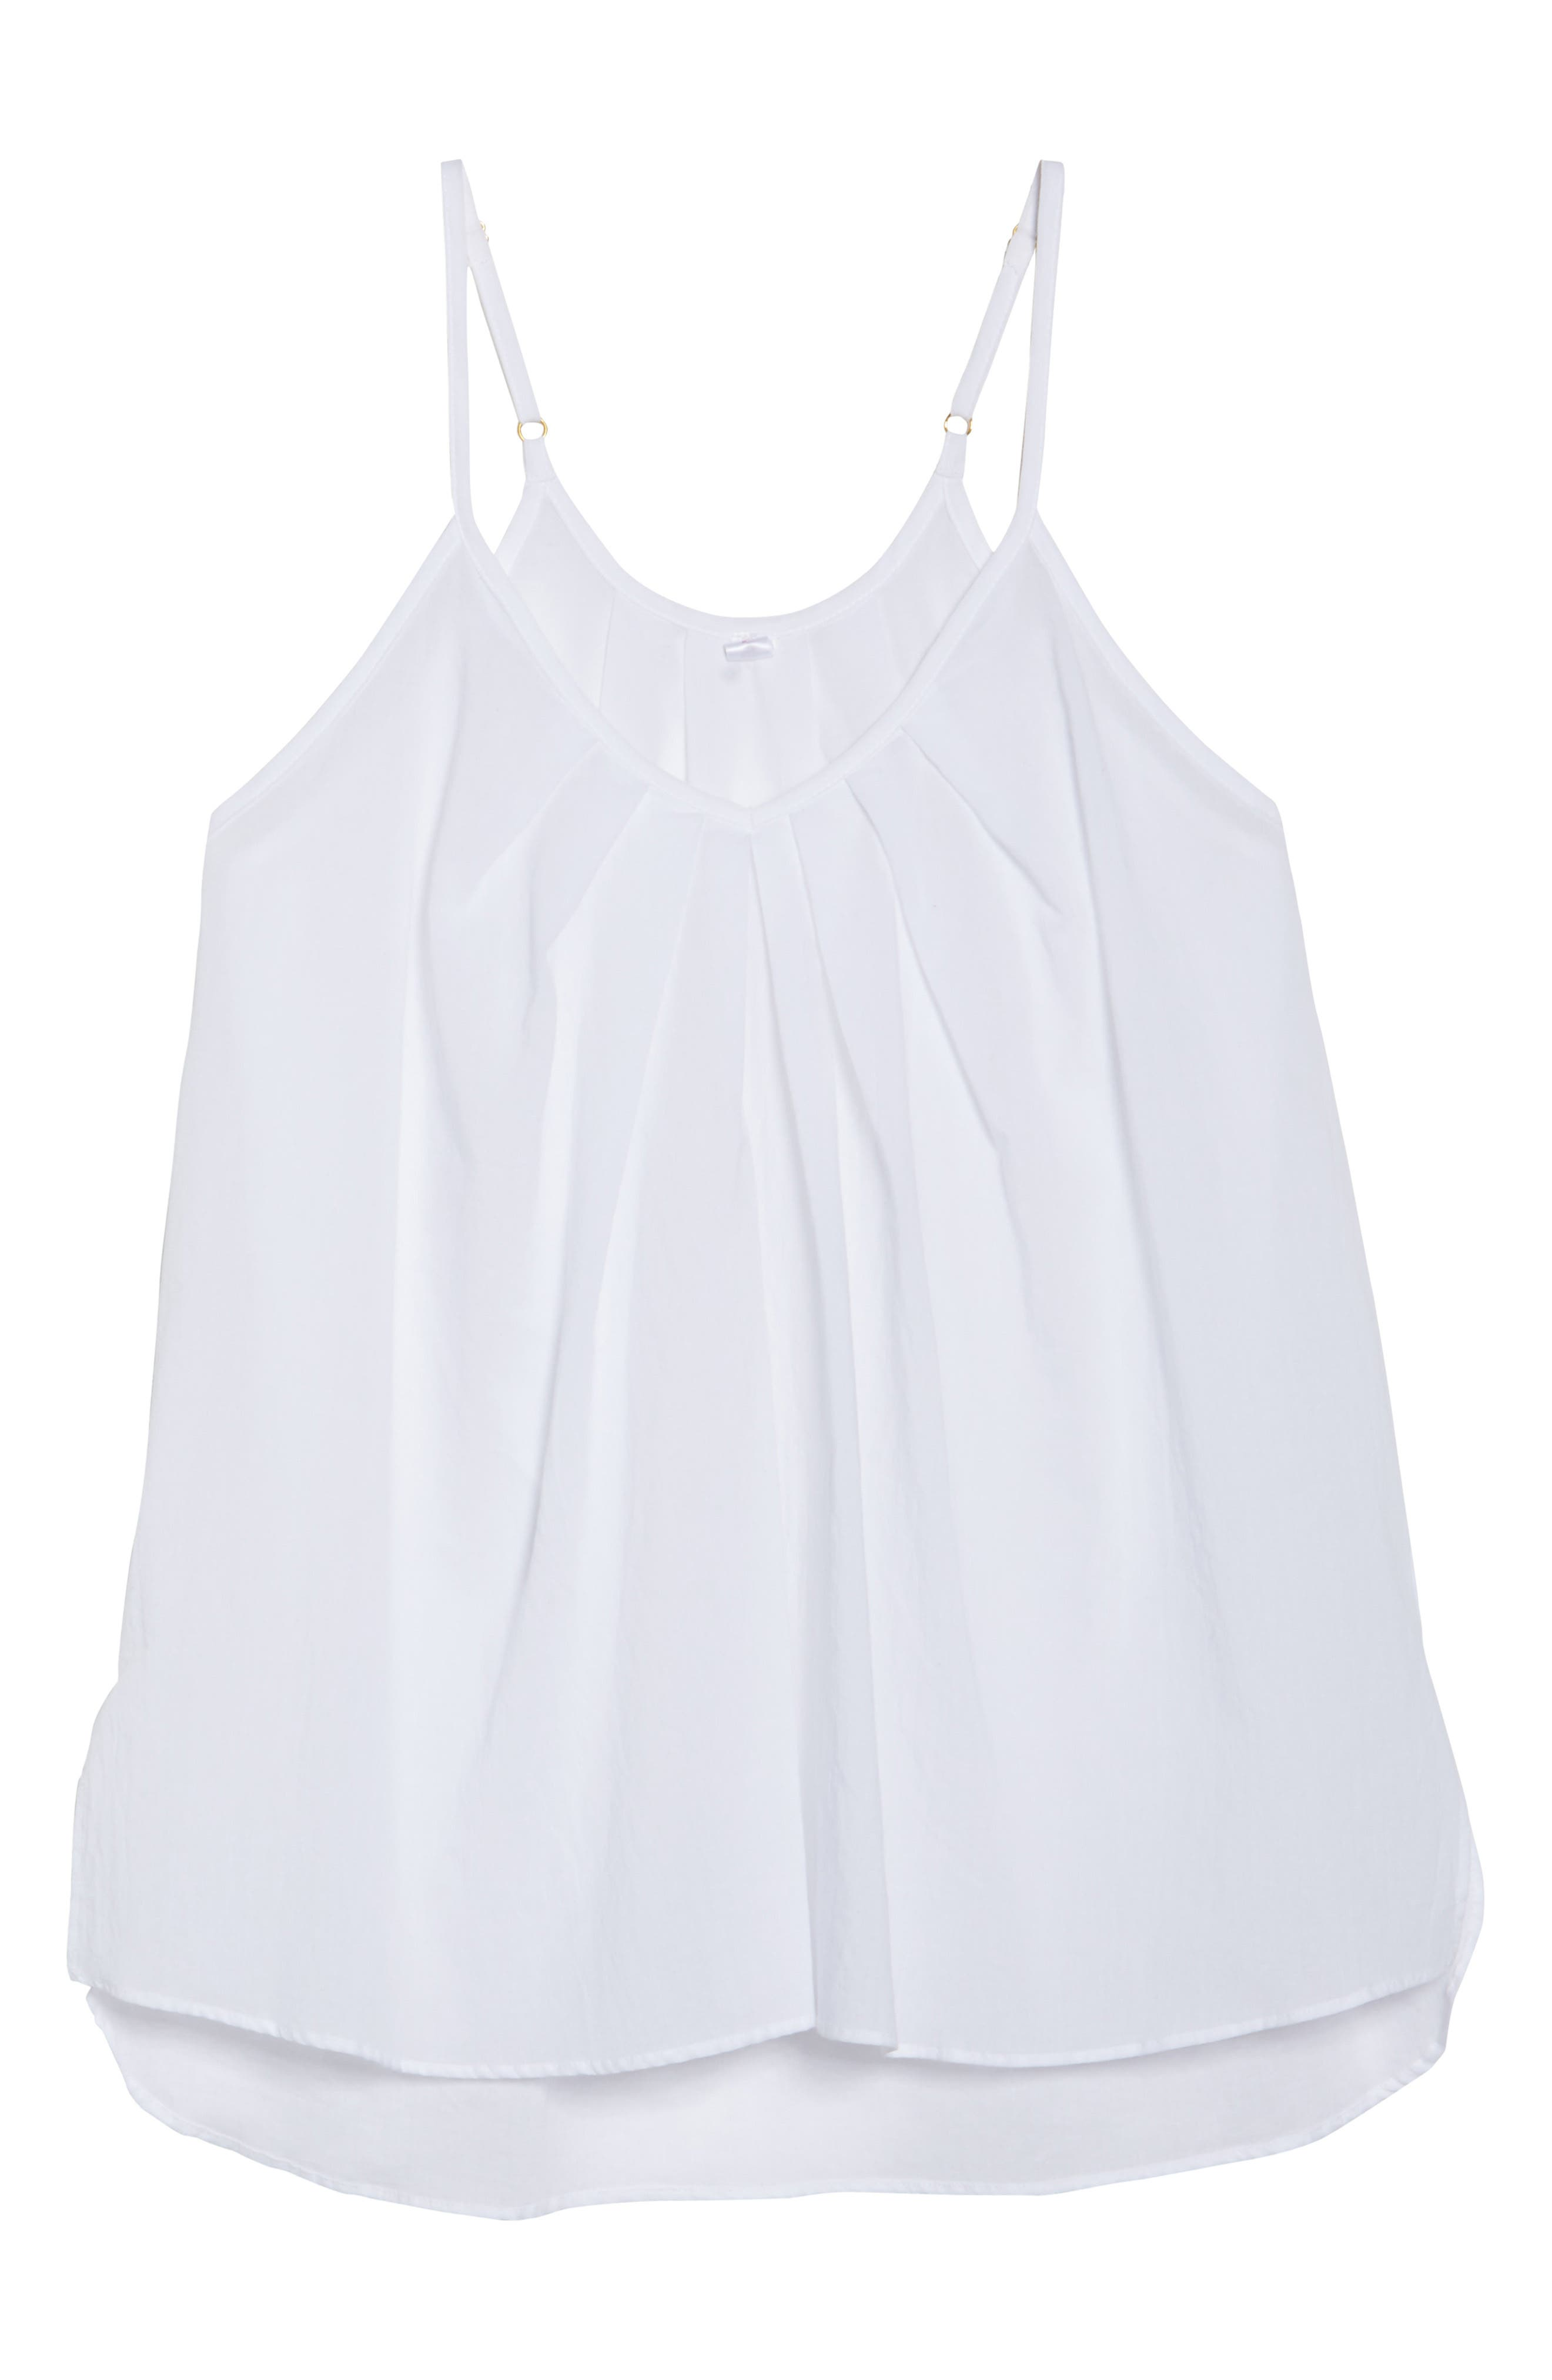 Cotton Voile Pleated Camisole,                             Alternate thumbnail 6, color,                             100